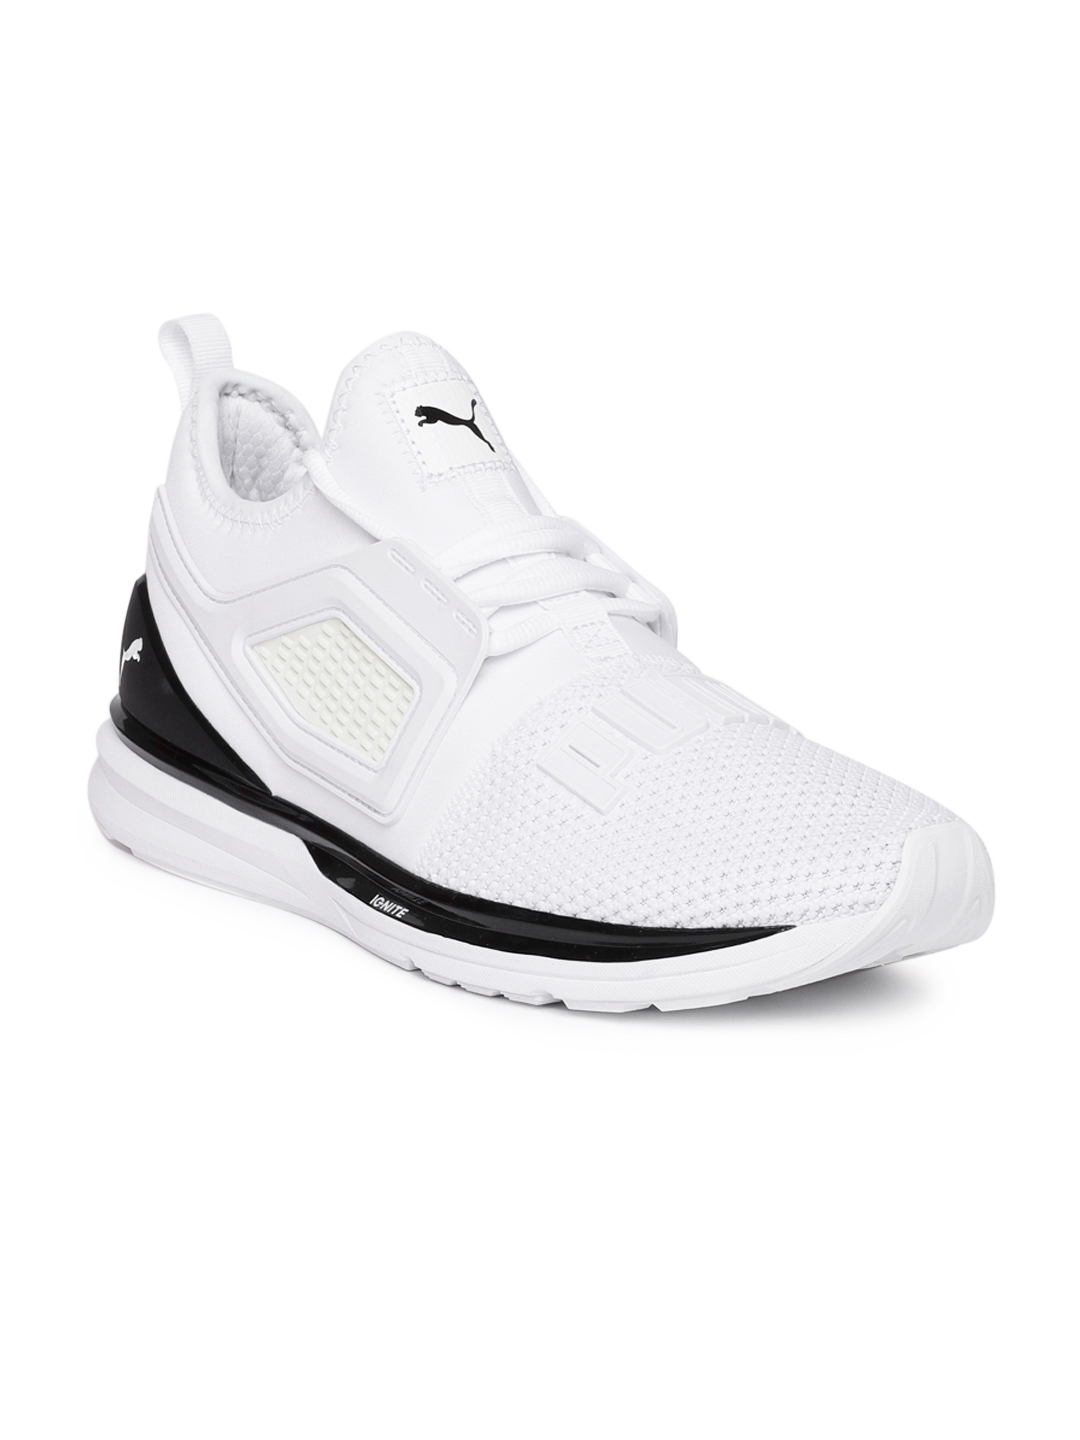 060f7d145dc9 Buy Puma Men White IGNITE Limitless 2 Running Shoes - Sports Shoes ...